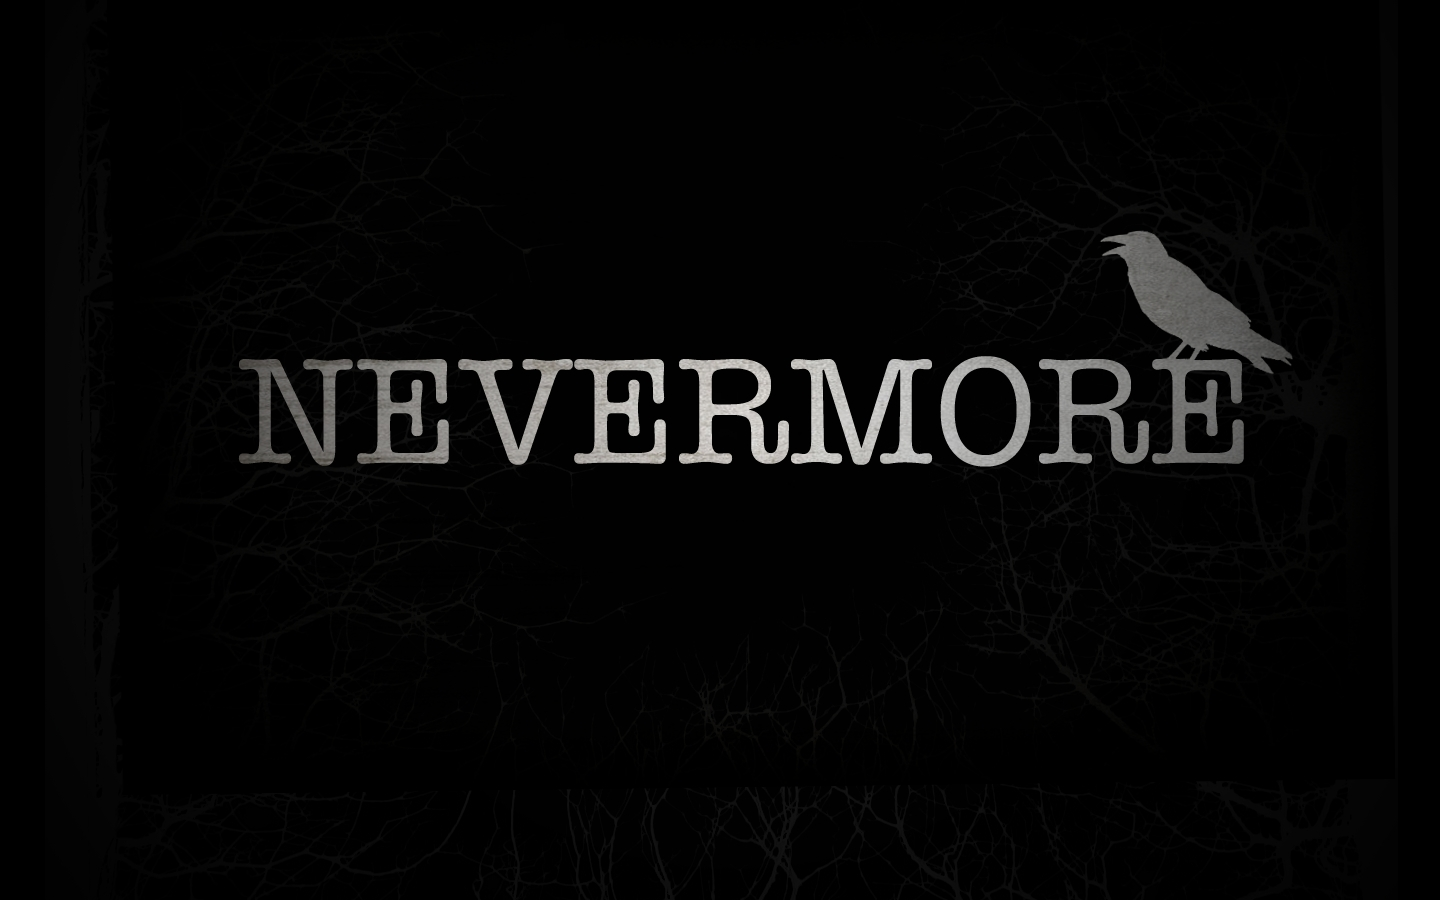 the raven poemedgar allan poe (nevermore) wallpaper and